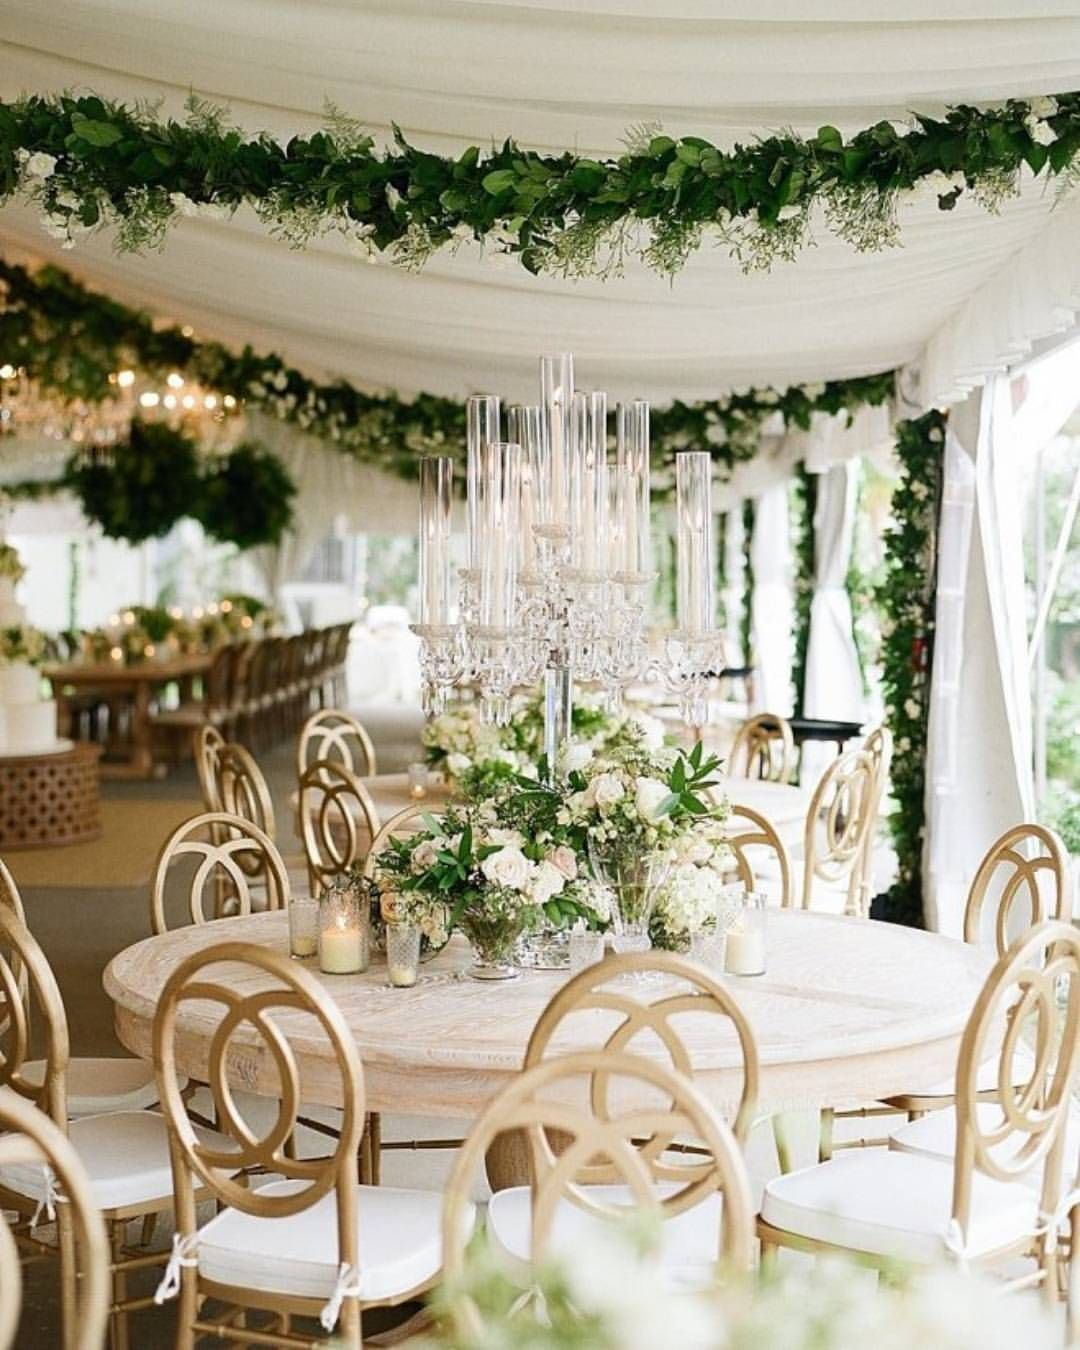 Evening Wedding Reception Decoration Ideas: Pin By STEMS Floral Design + Event Styling On White